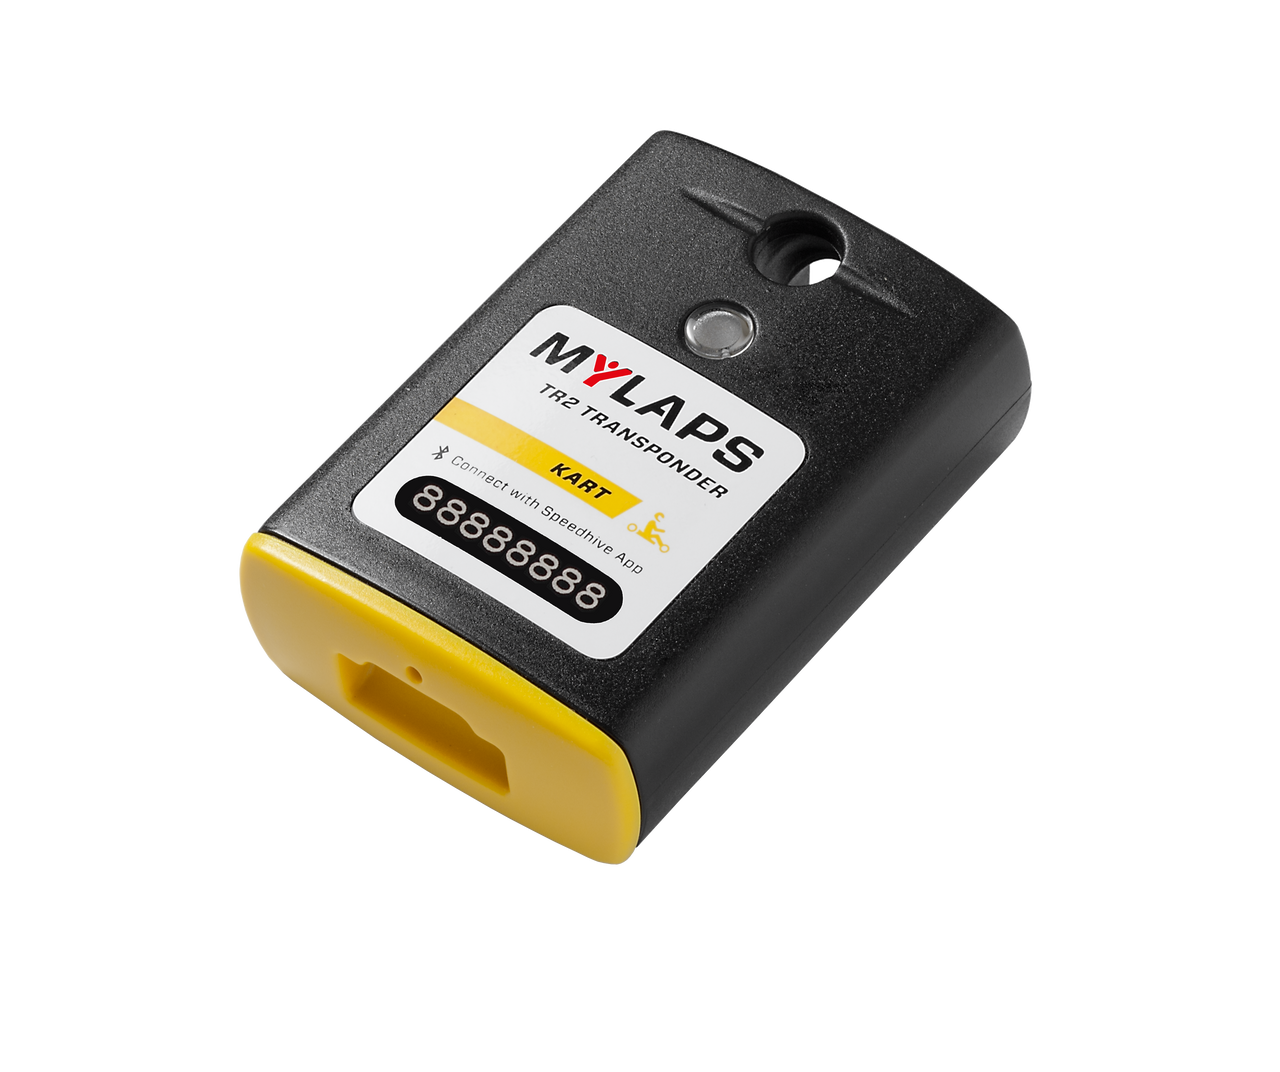 MyLaps TR2 Rechargeable Transponder (Kart), 1-year subscription